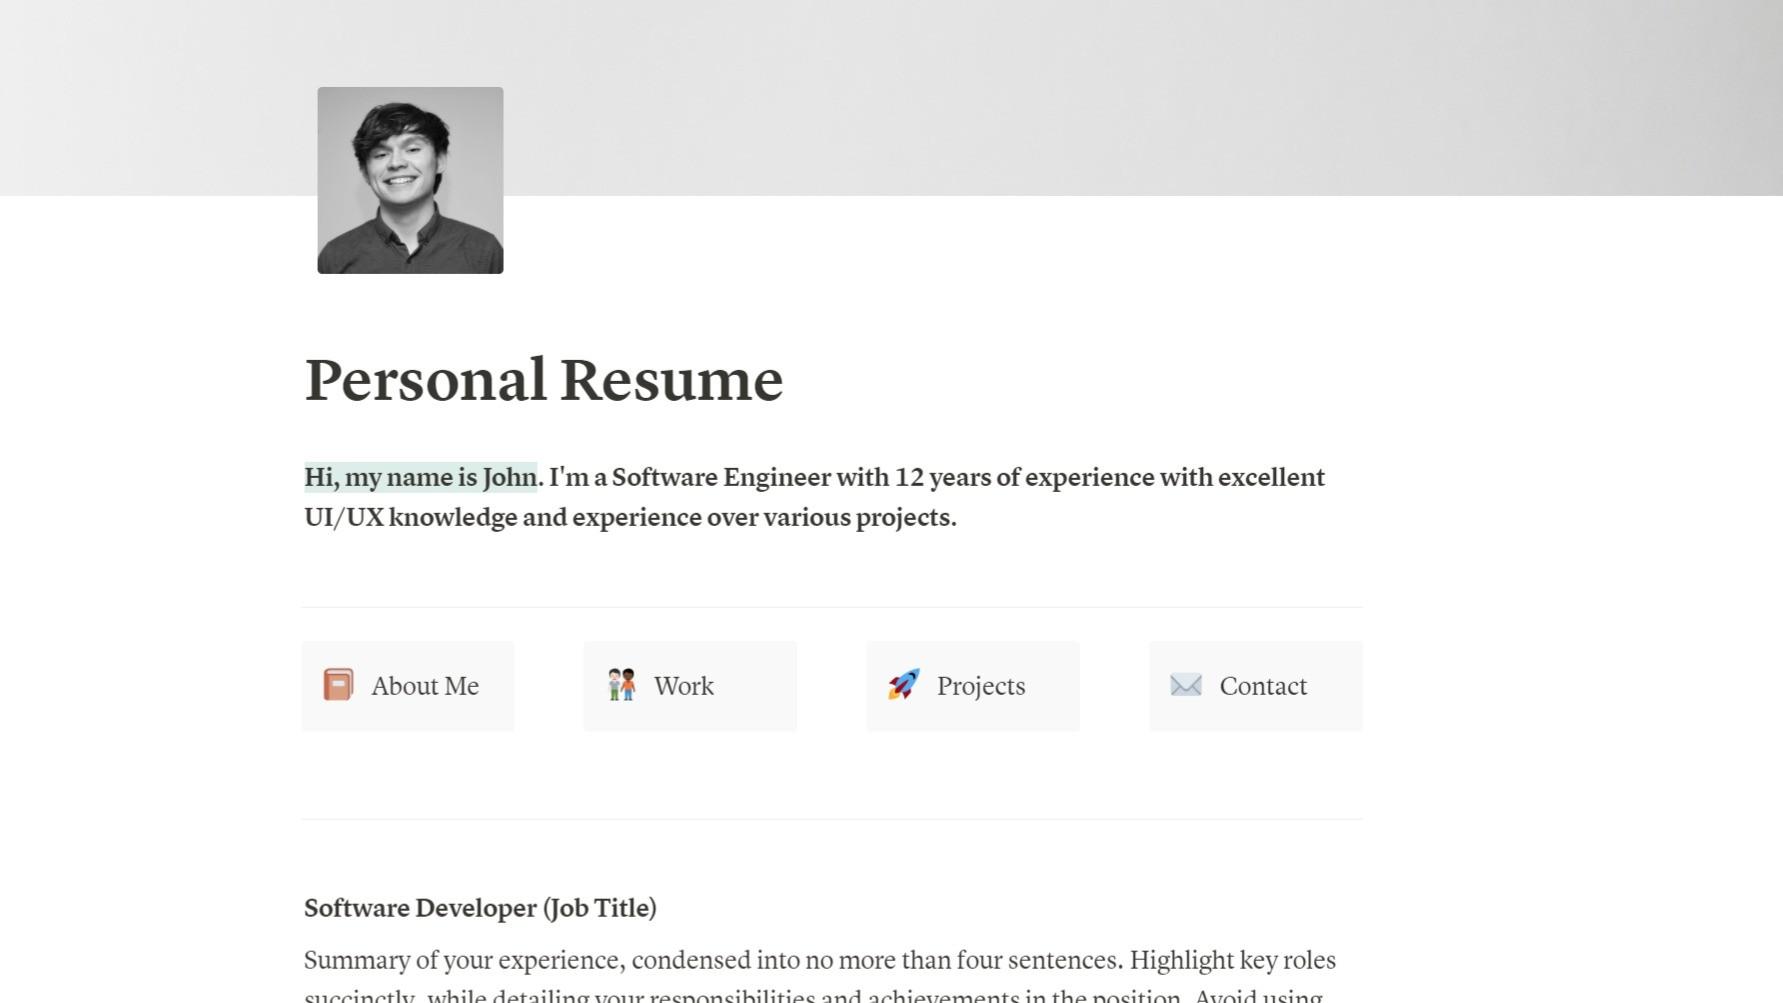 AppSumo Deal for Personal Resume - Notion Template